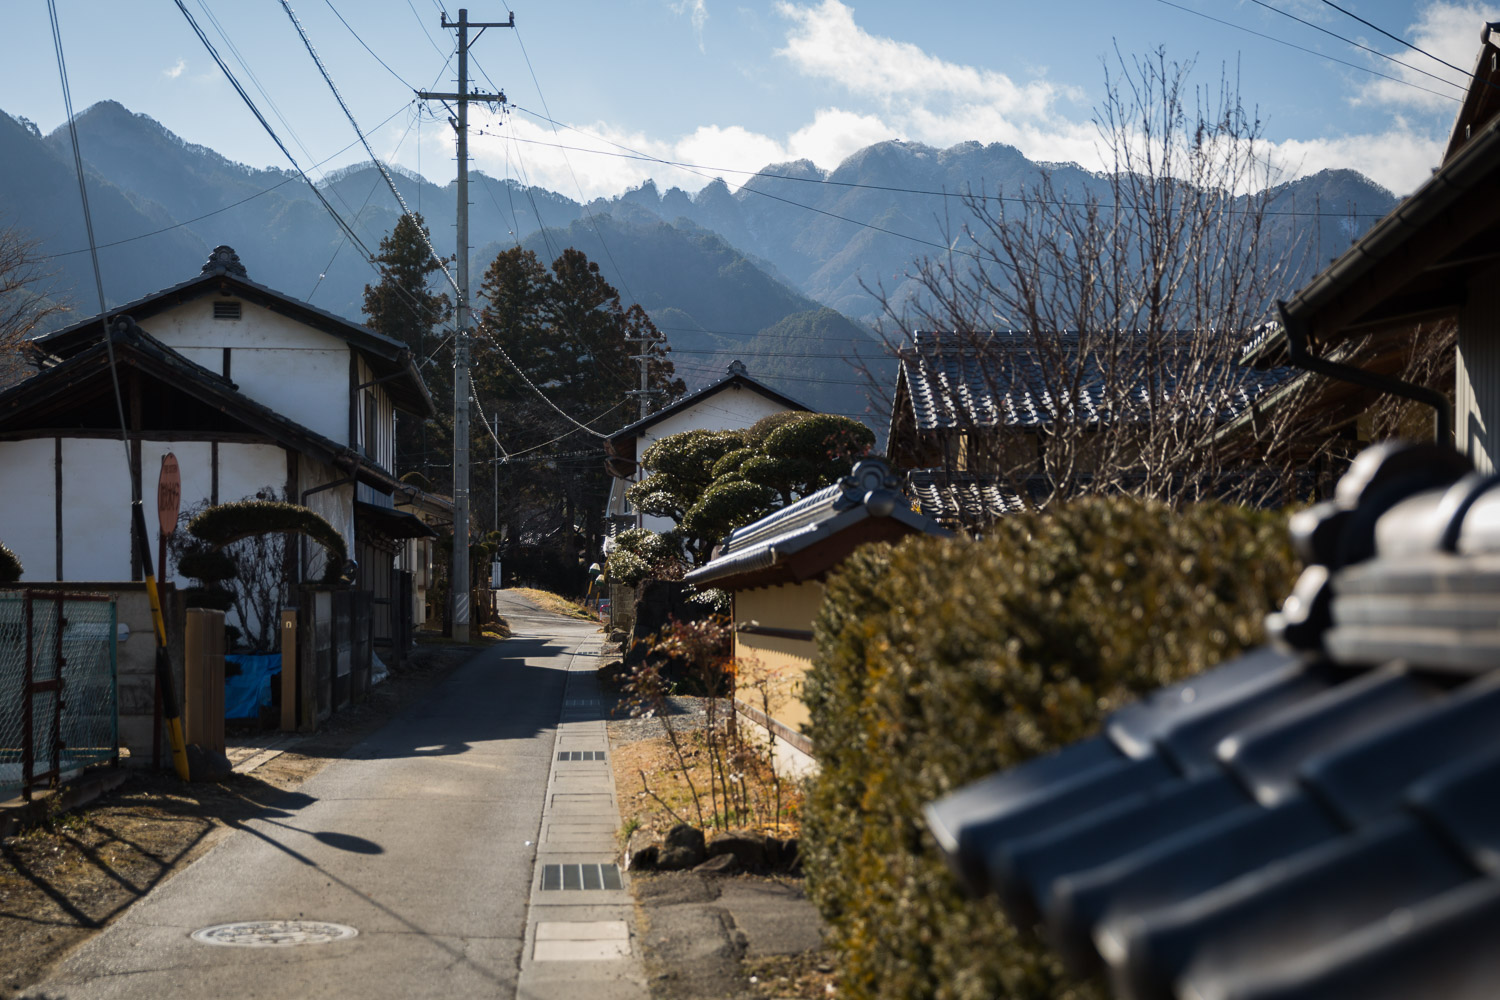 Traditional houses along a quiet rural street near Ueda, Nagano, Japan